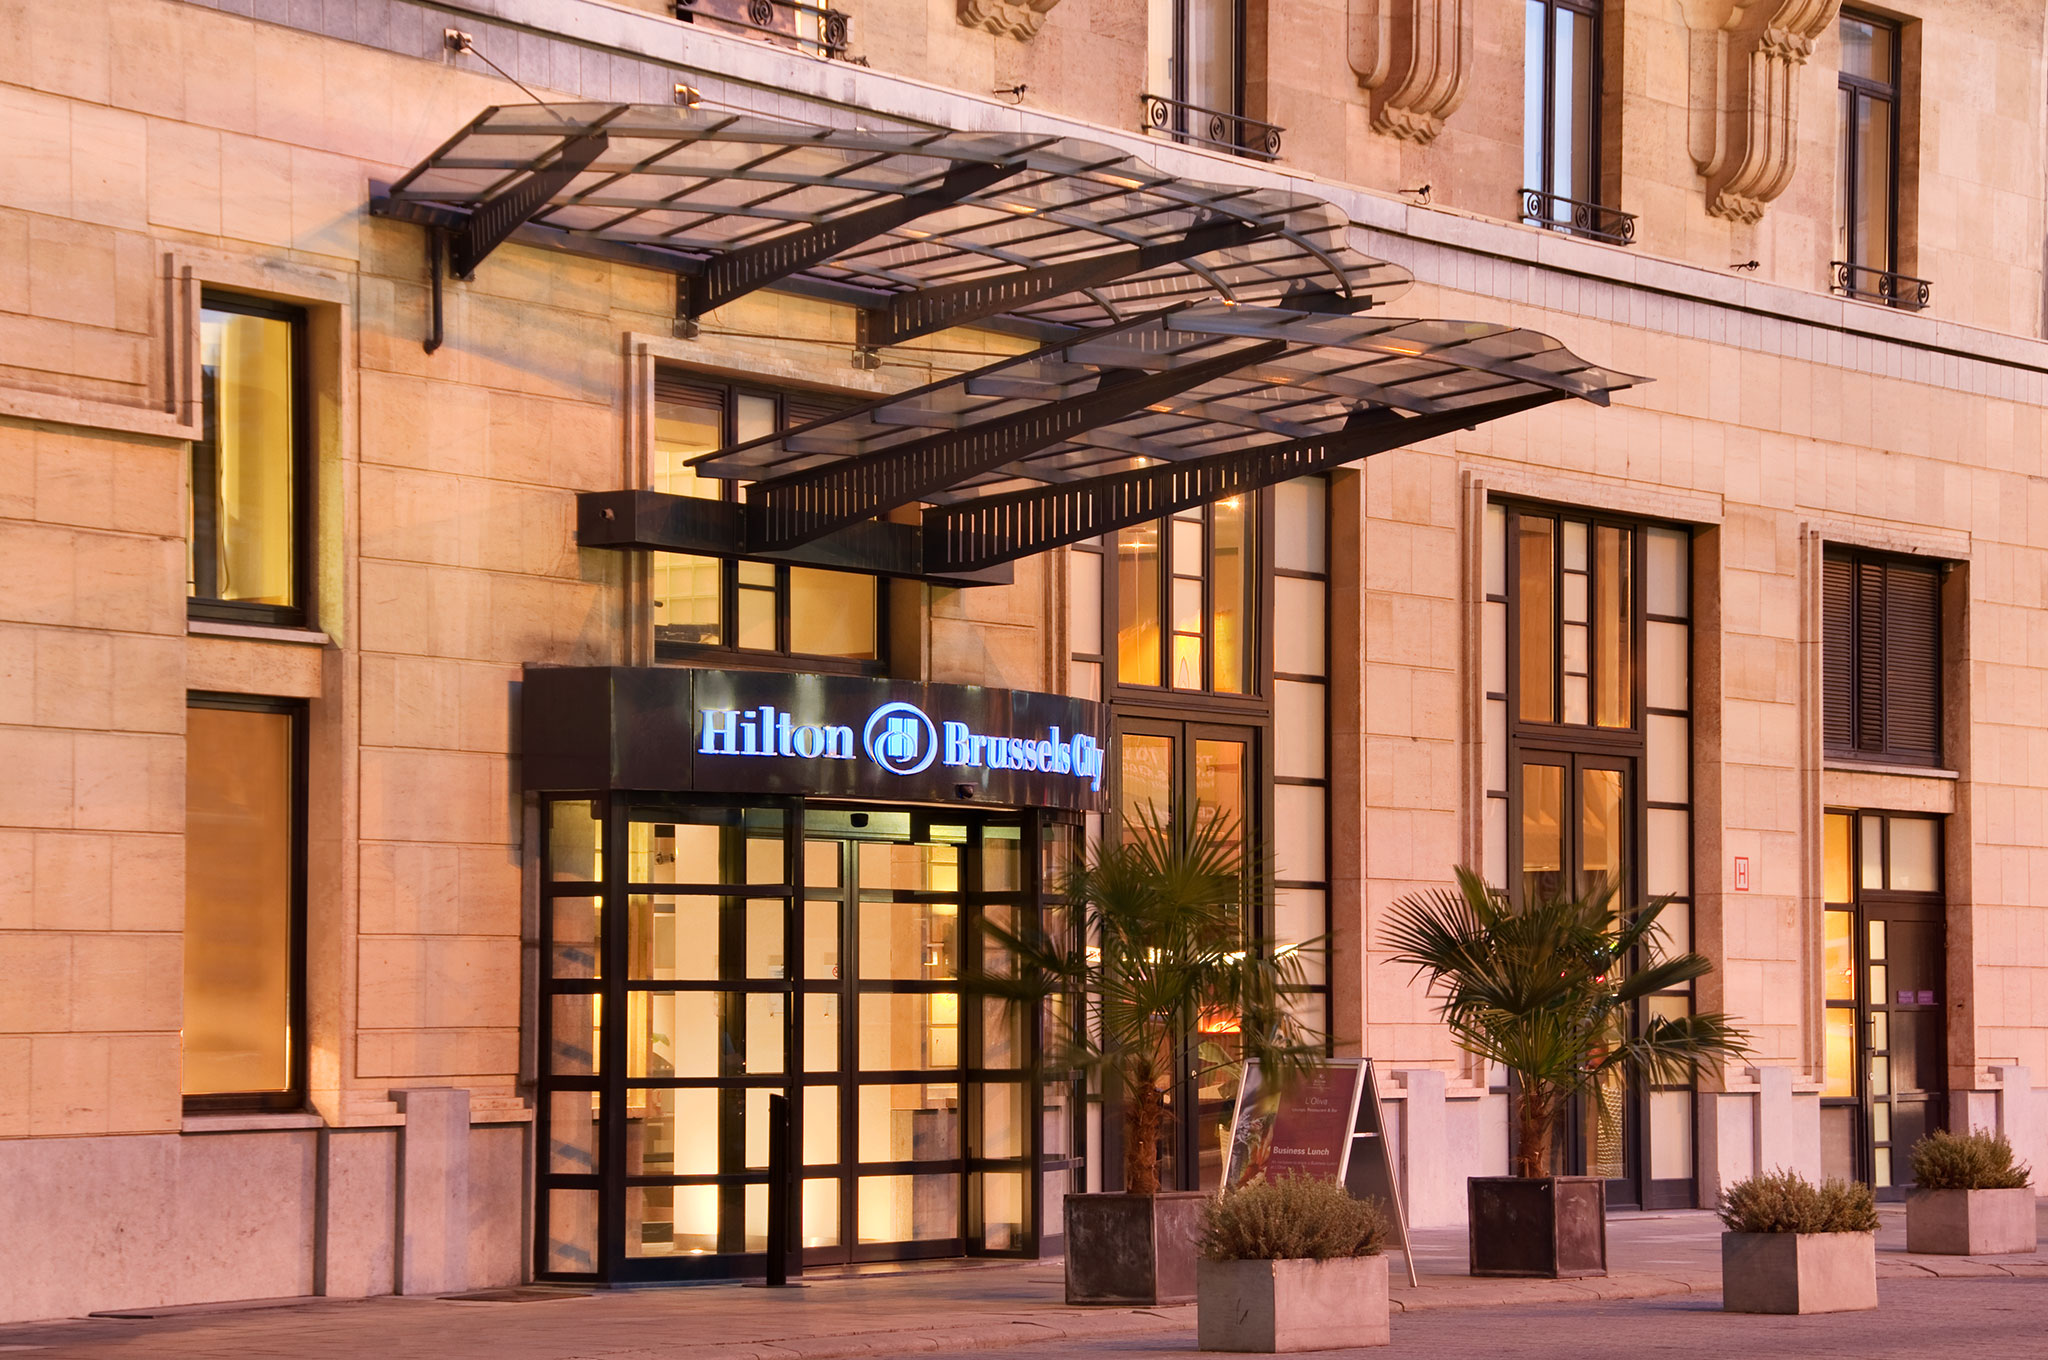 hilton hotels resorts belgique